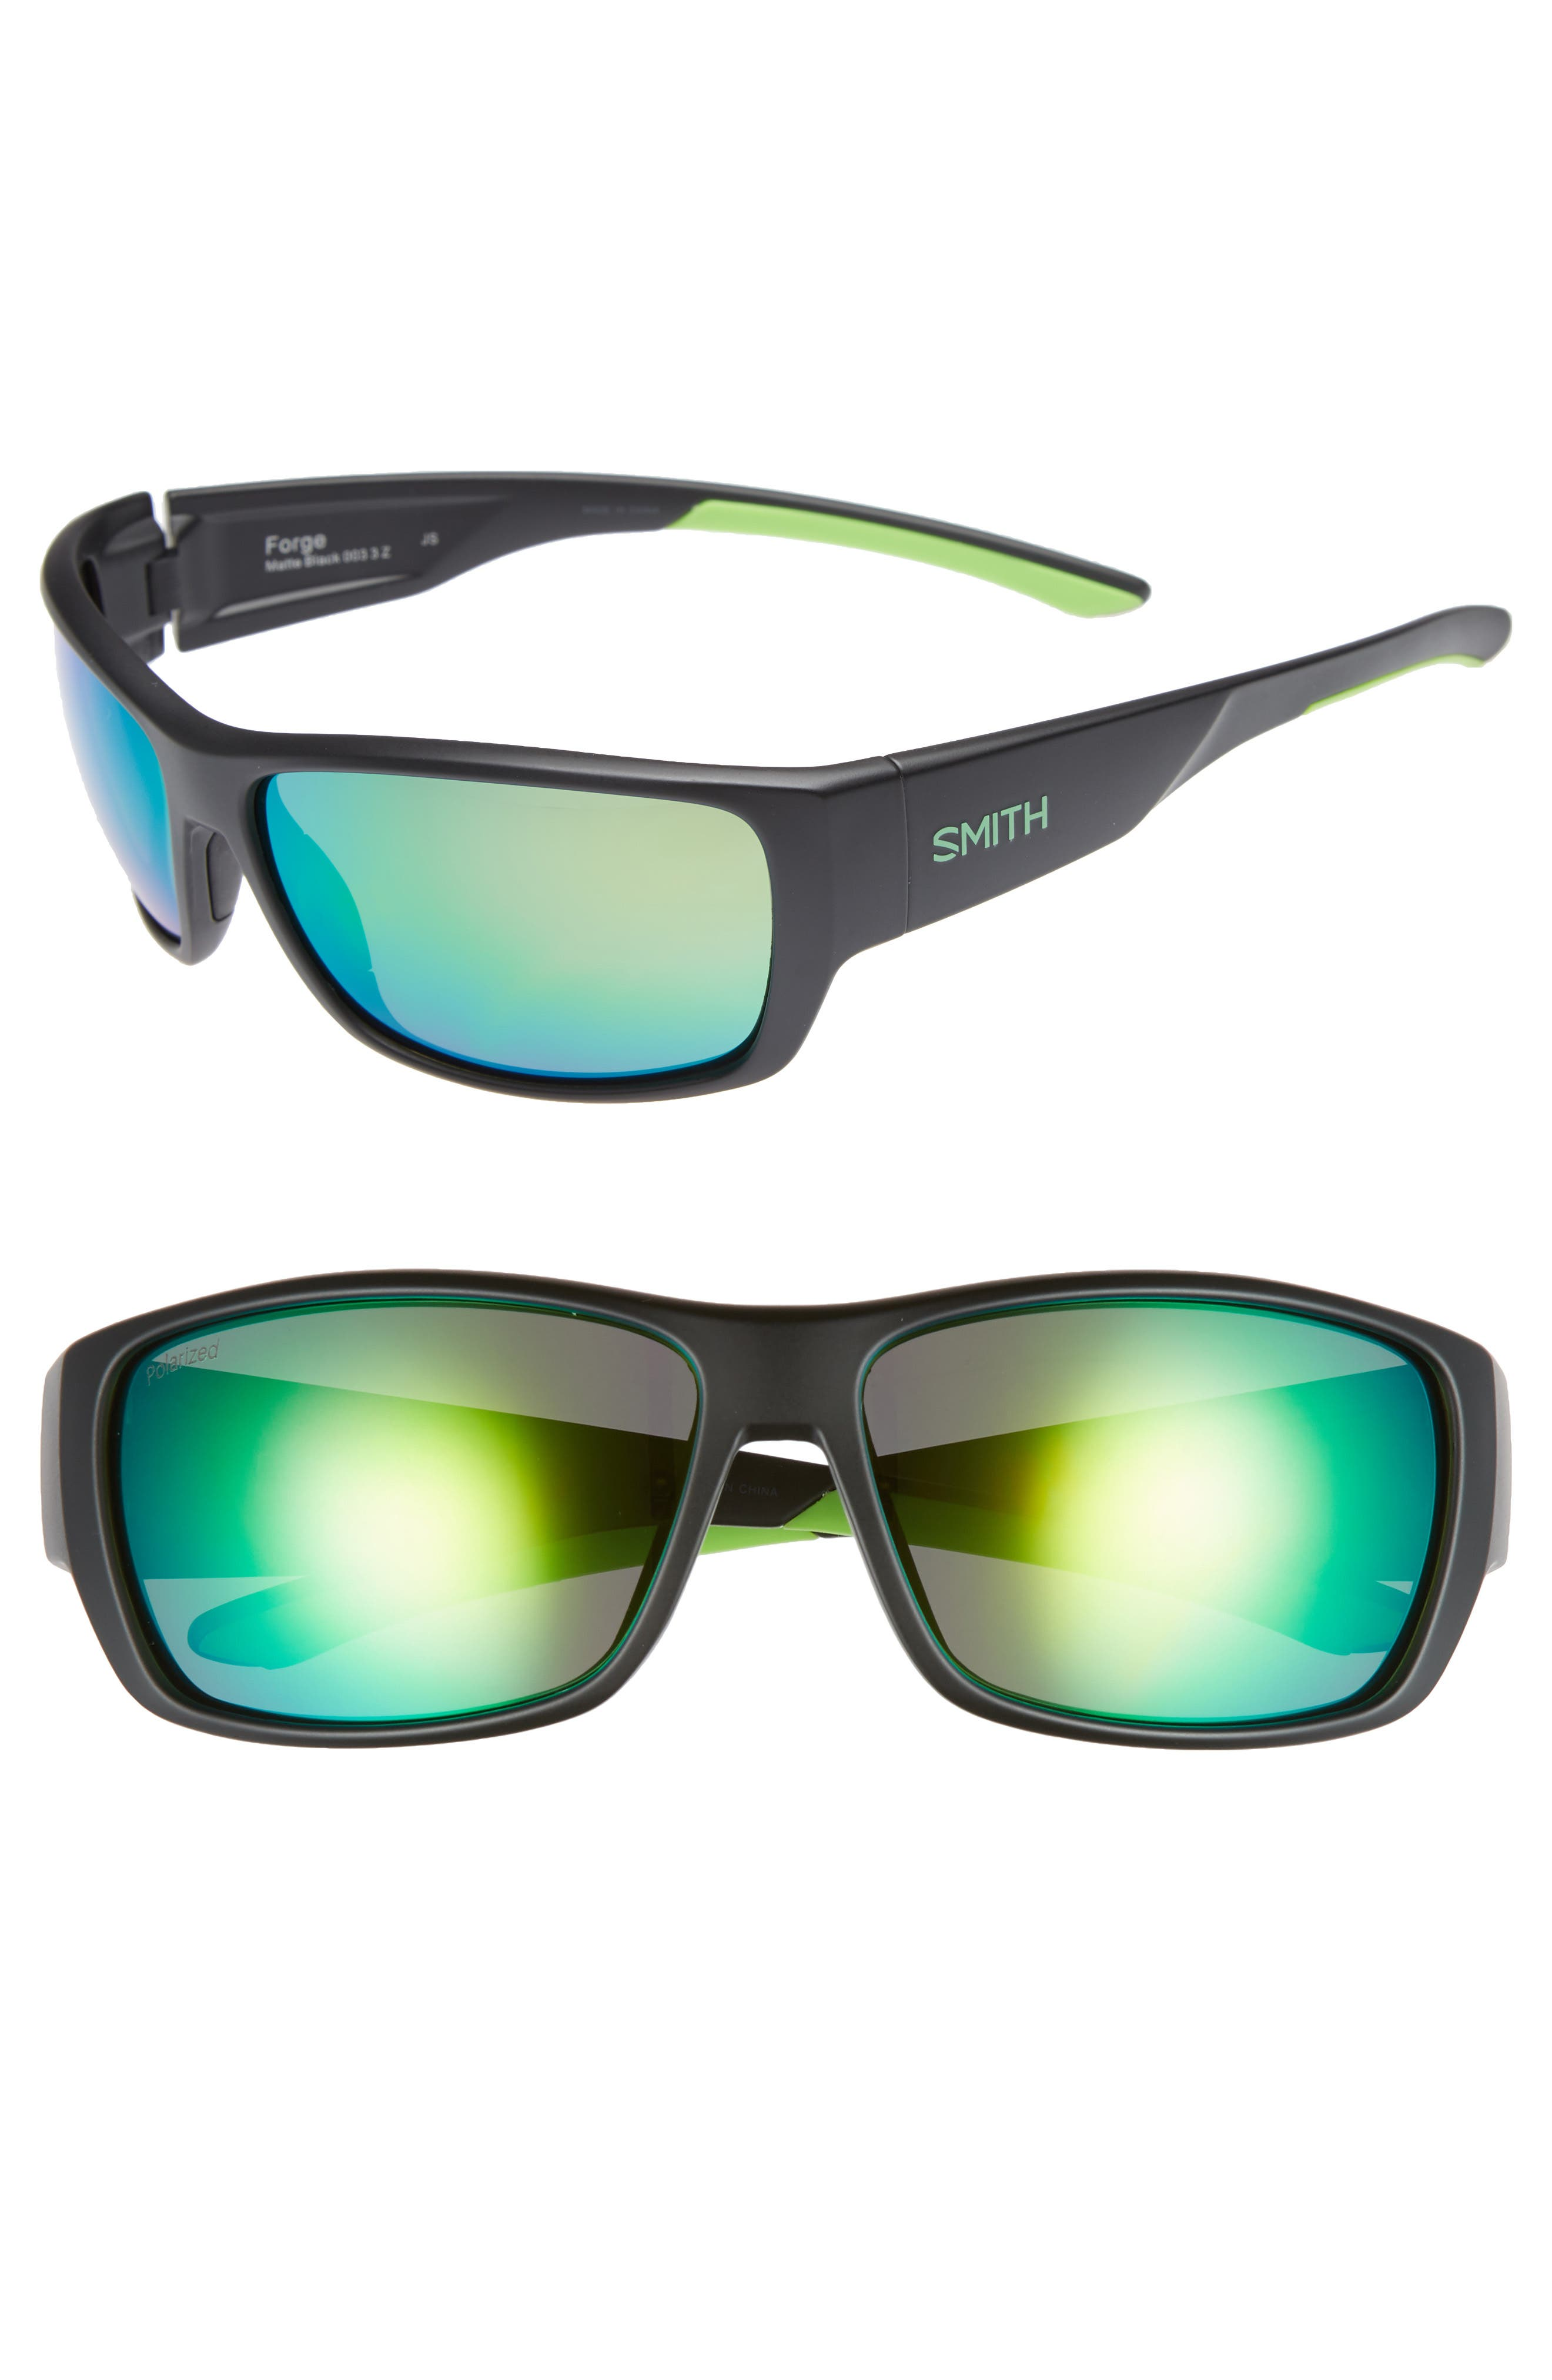 SMITH FORGE 61MM POLARIZED SUNGLASSES - MATTE BLACK/ GREEN MIRROR